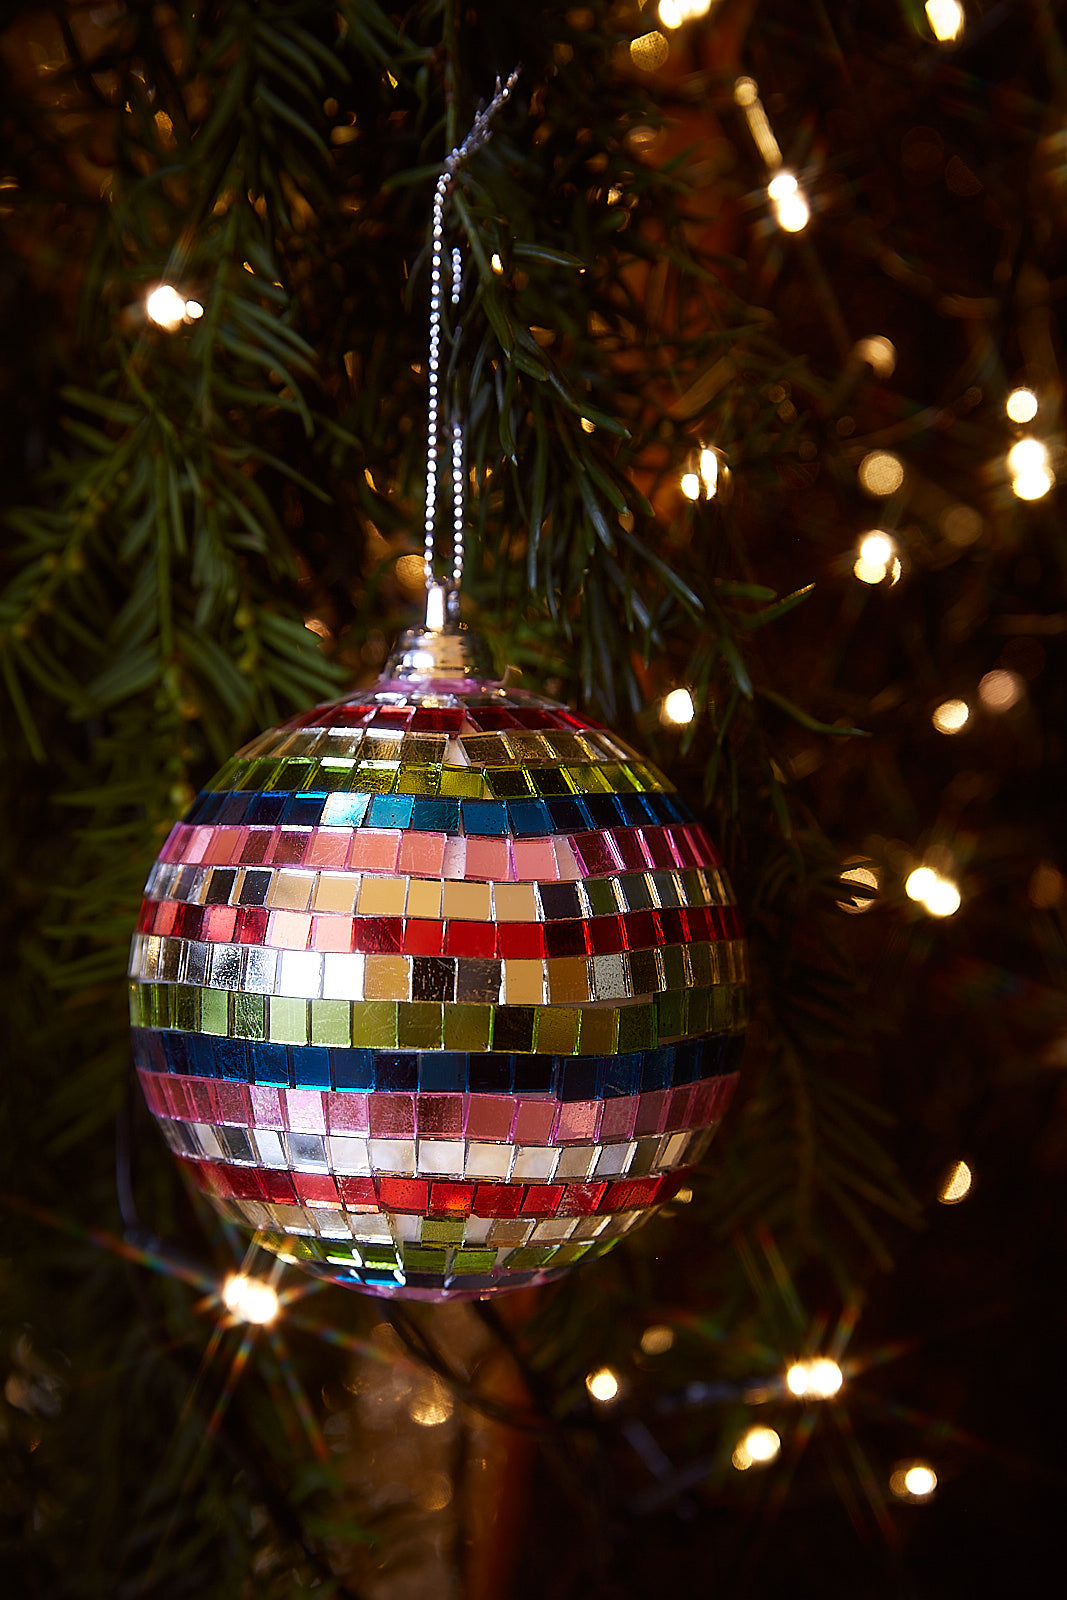 Mirror balls ornament